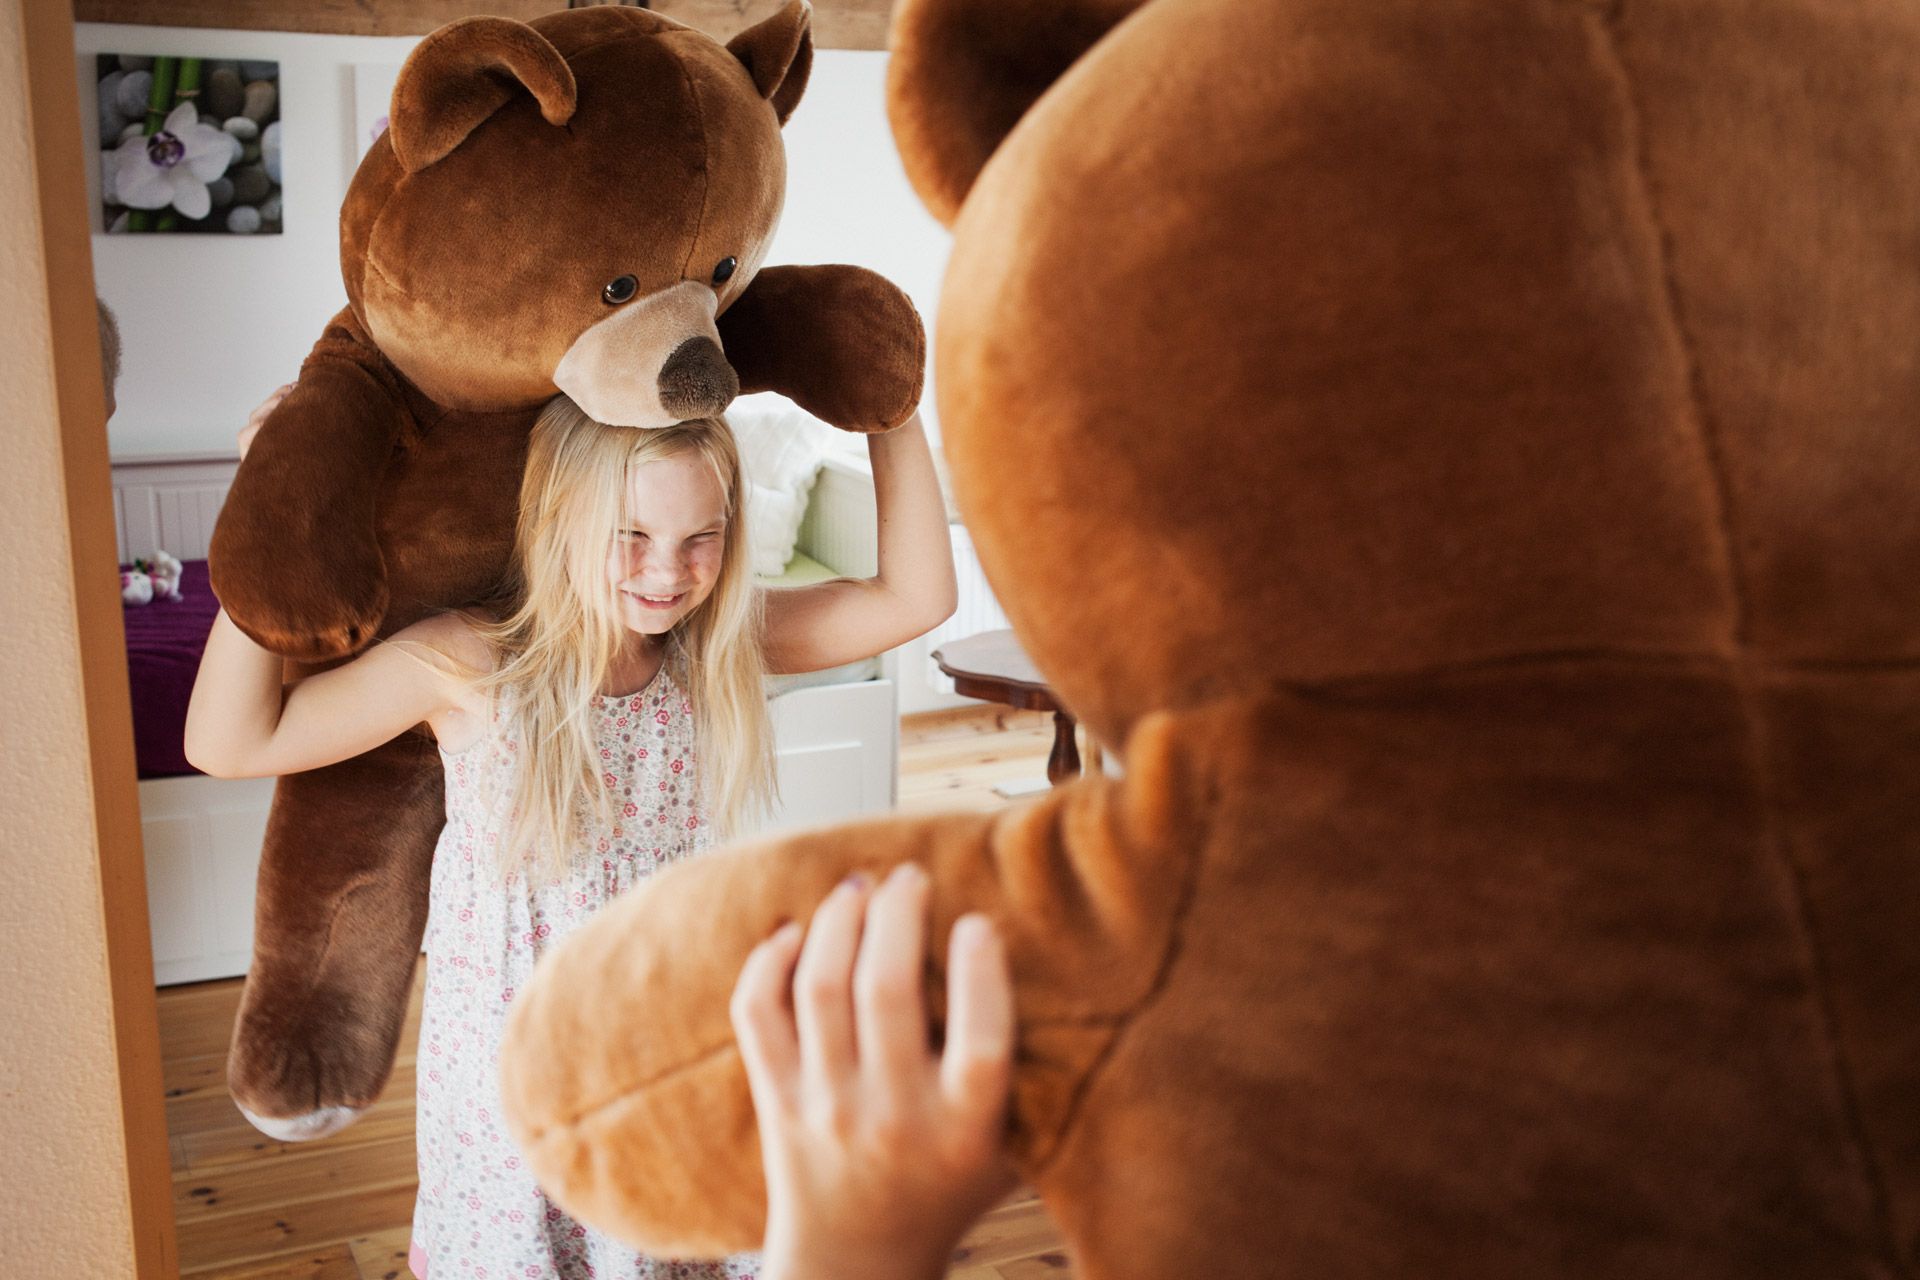 timo-stammberger-photography-fotografie-kids-playing-teddy-bear-happy-compassion